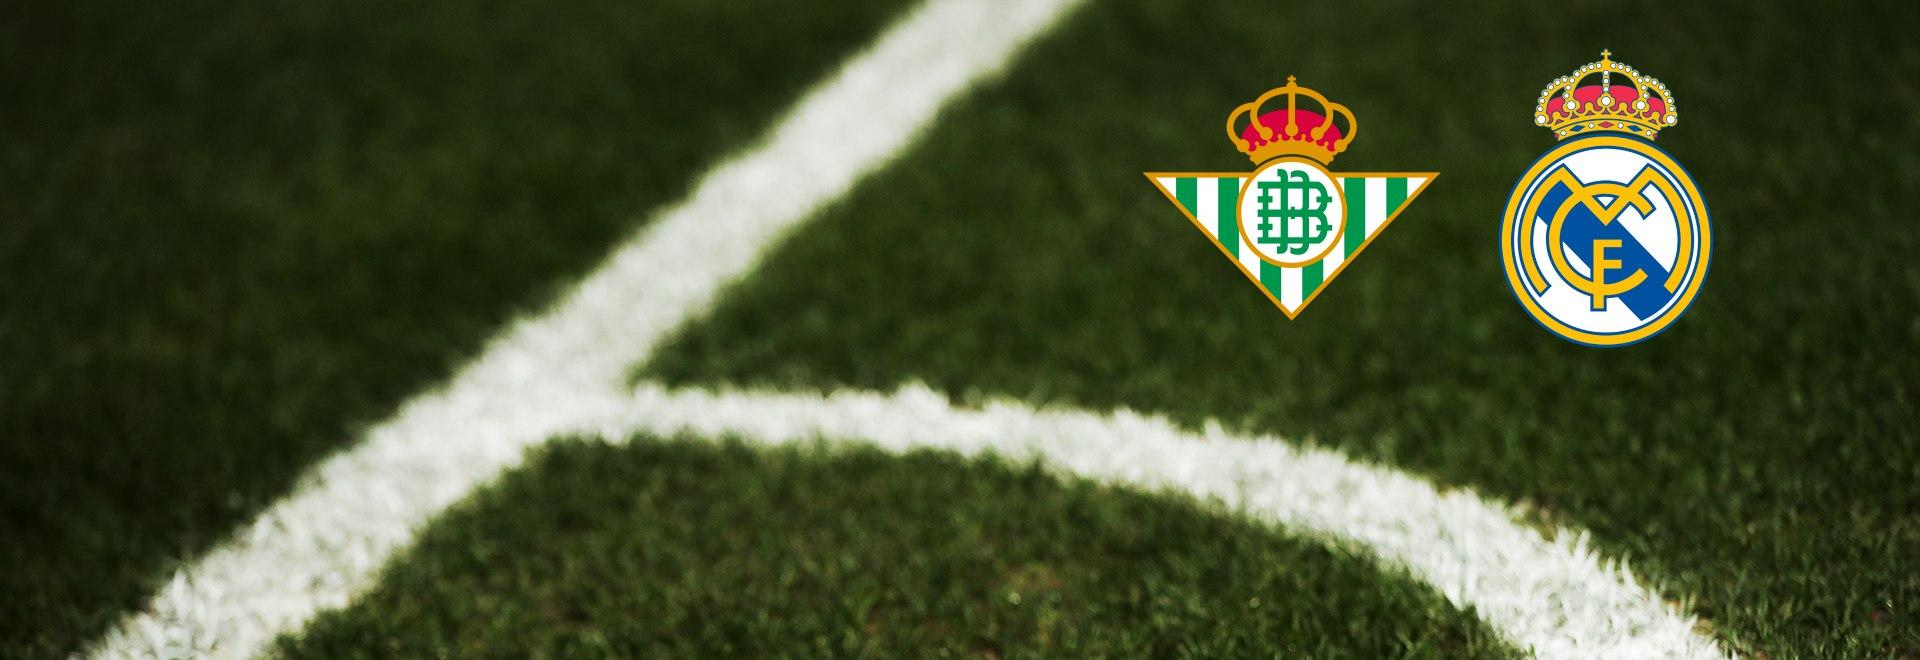 Real Betis - Real Madrid. 27a g.